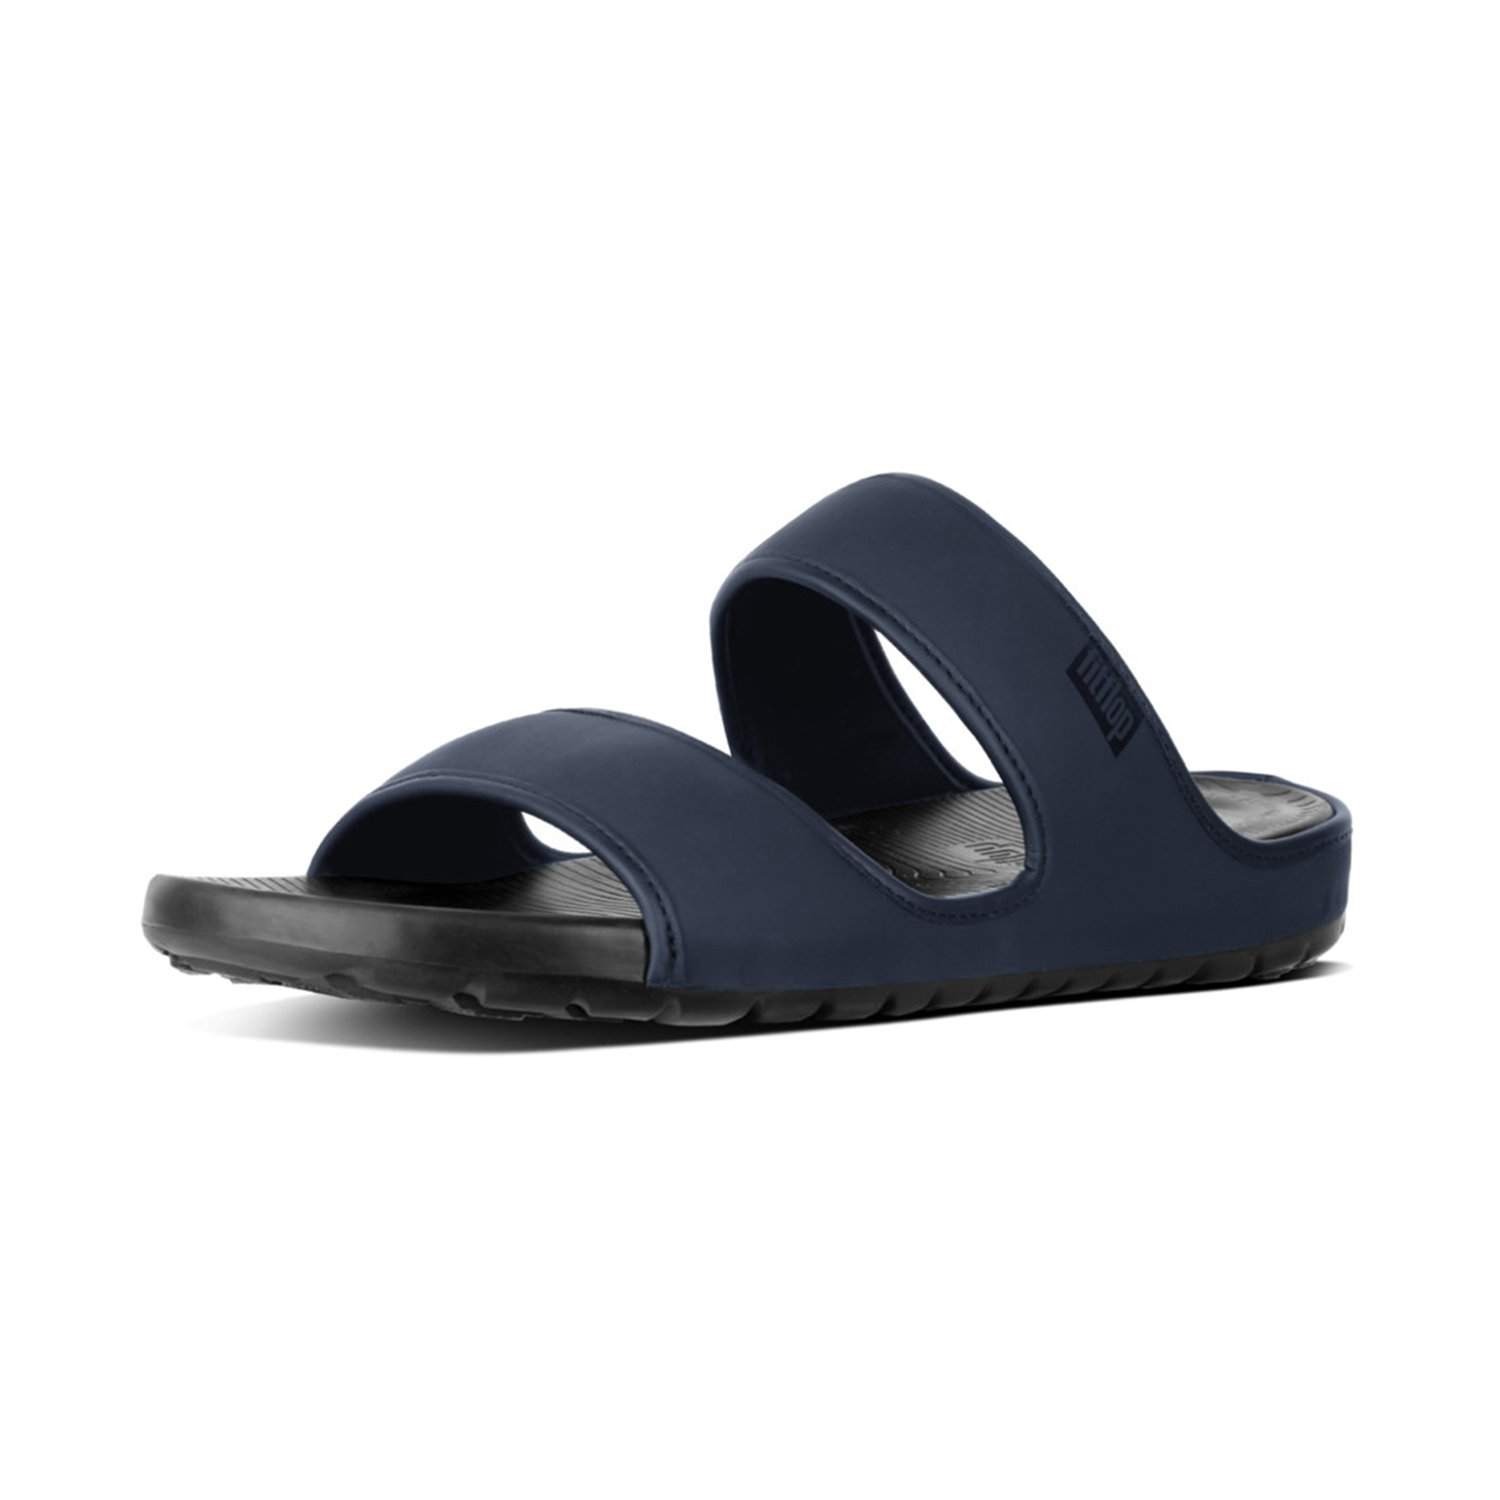 TALLA 44 EU. Fit Flop Lido TM Double Slide Sandals In Neoprene, Chanclas para Hombre